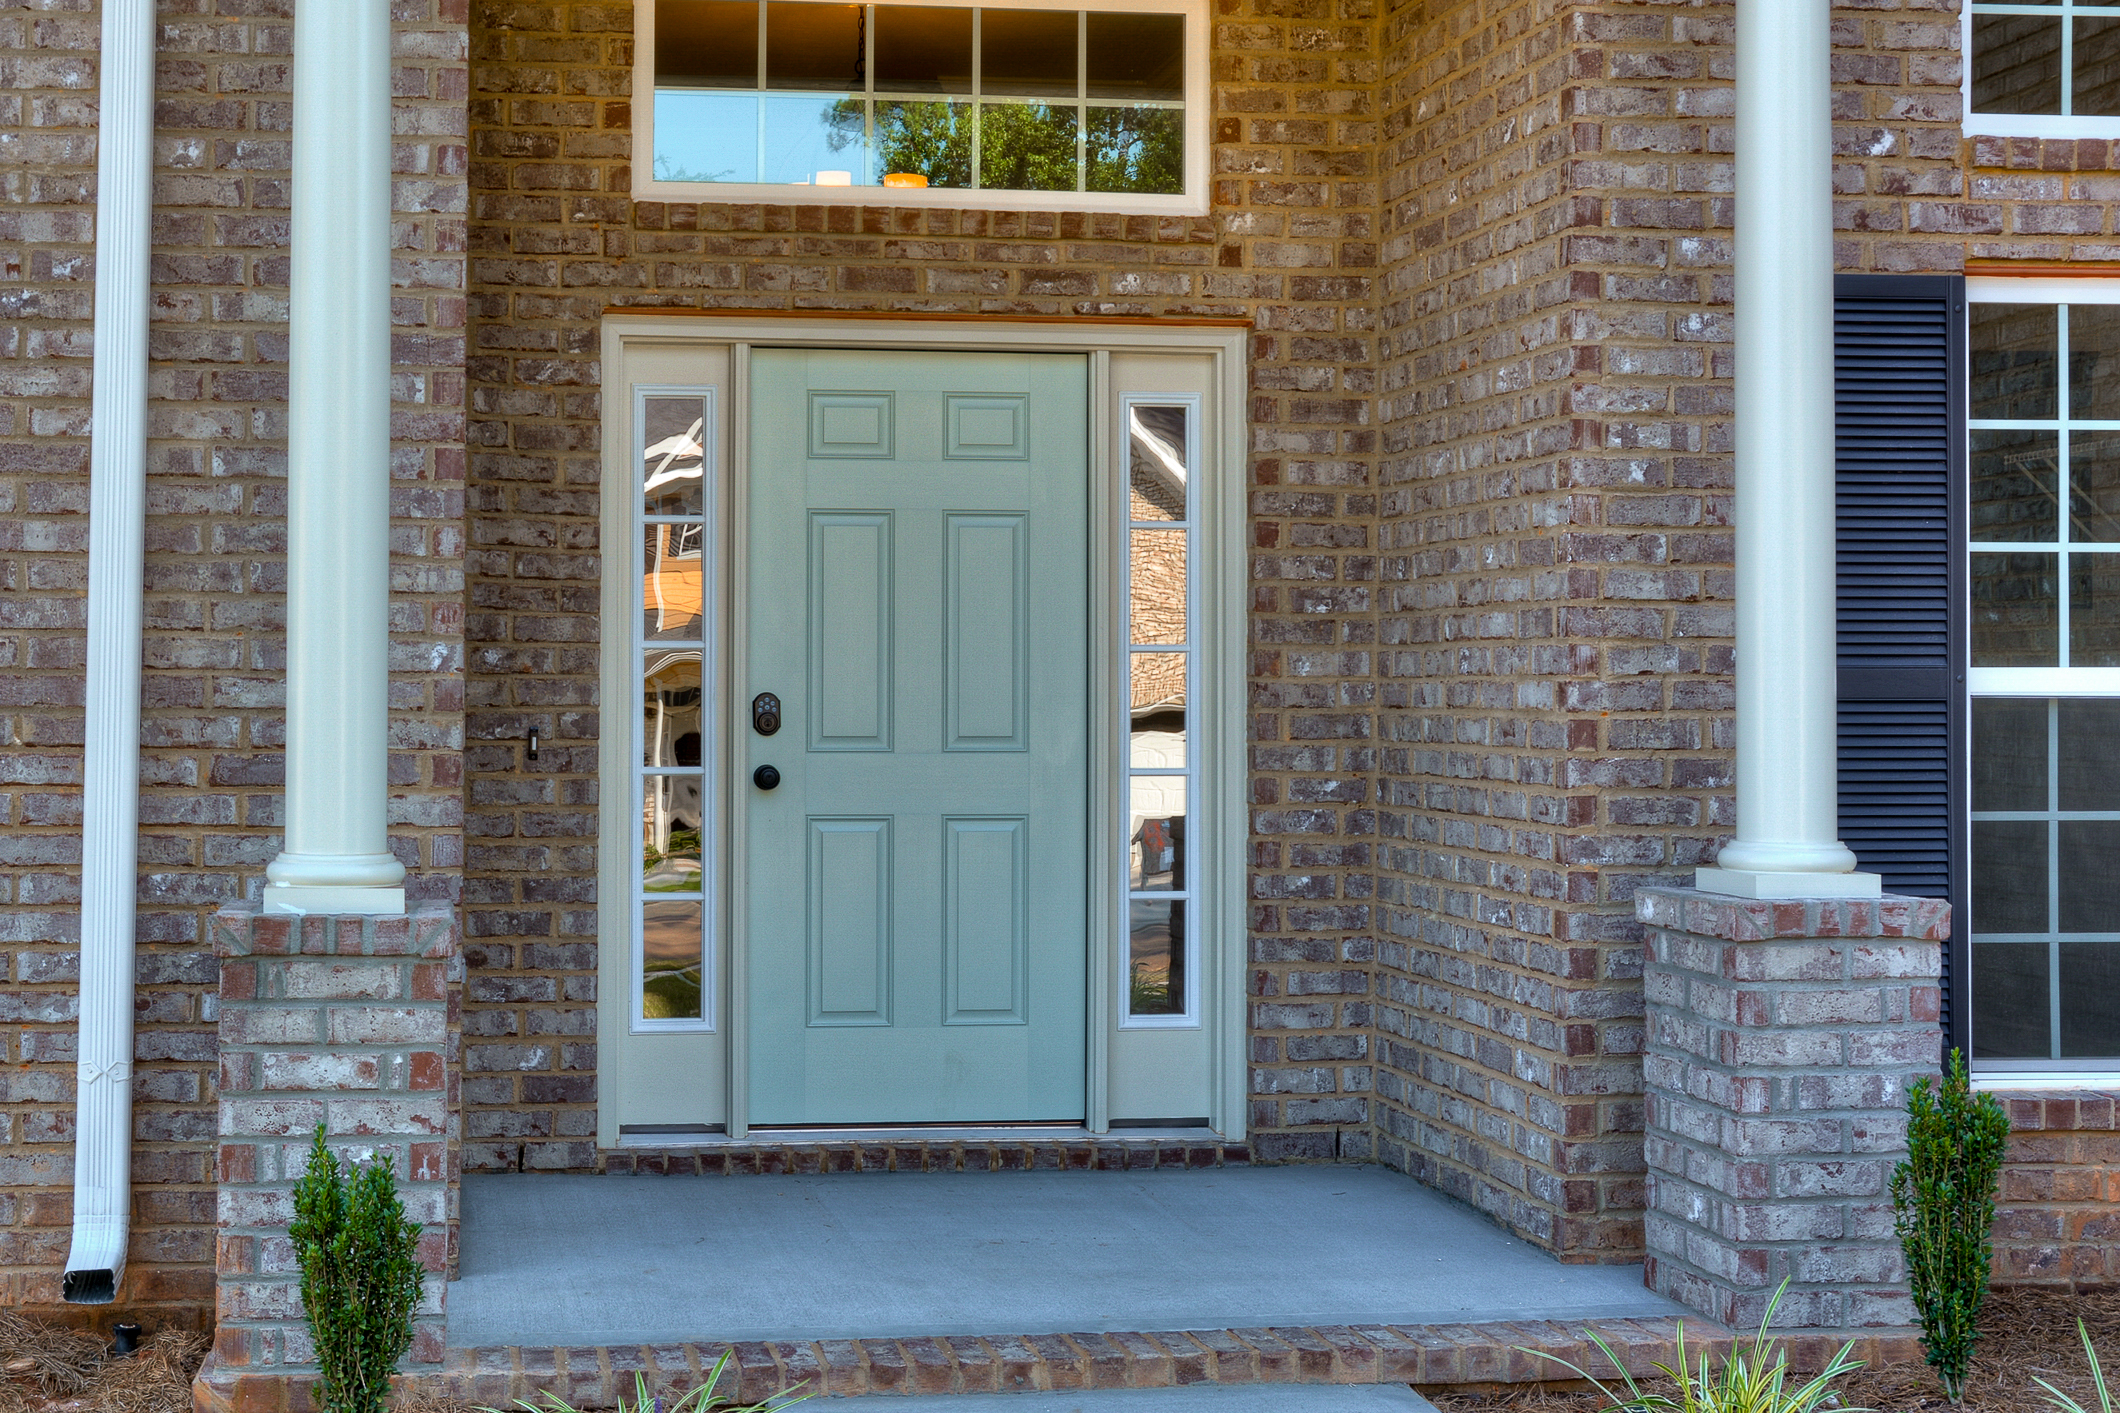 An image of the front door of a home in Bergen Place West.